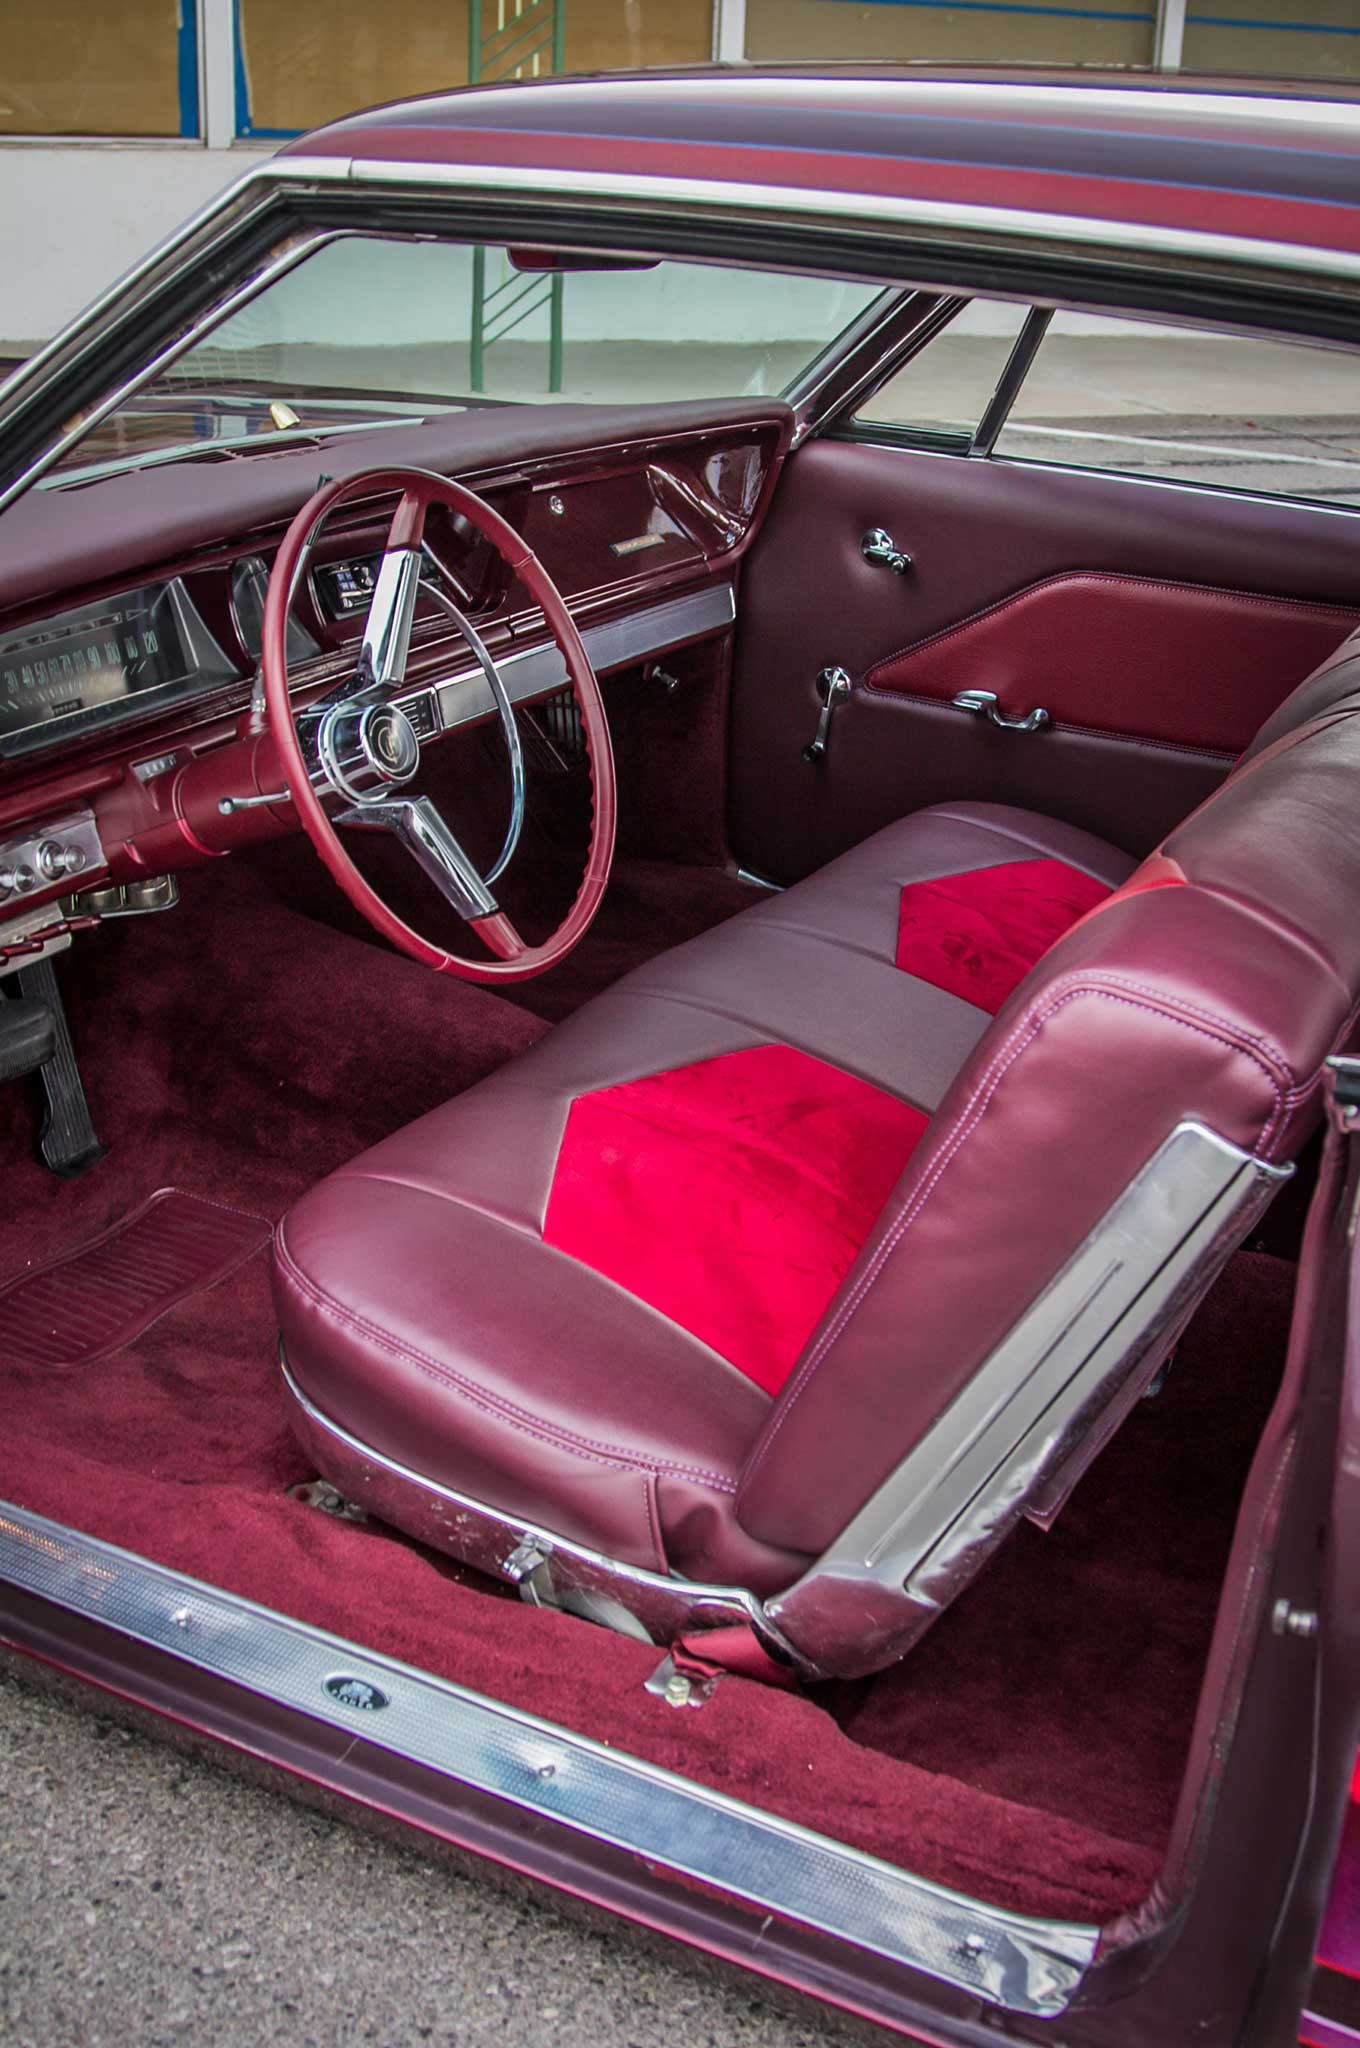 1966 Impala Interior Pictures To Pin On Pinterest Pinsdaddy